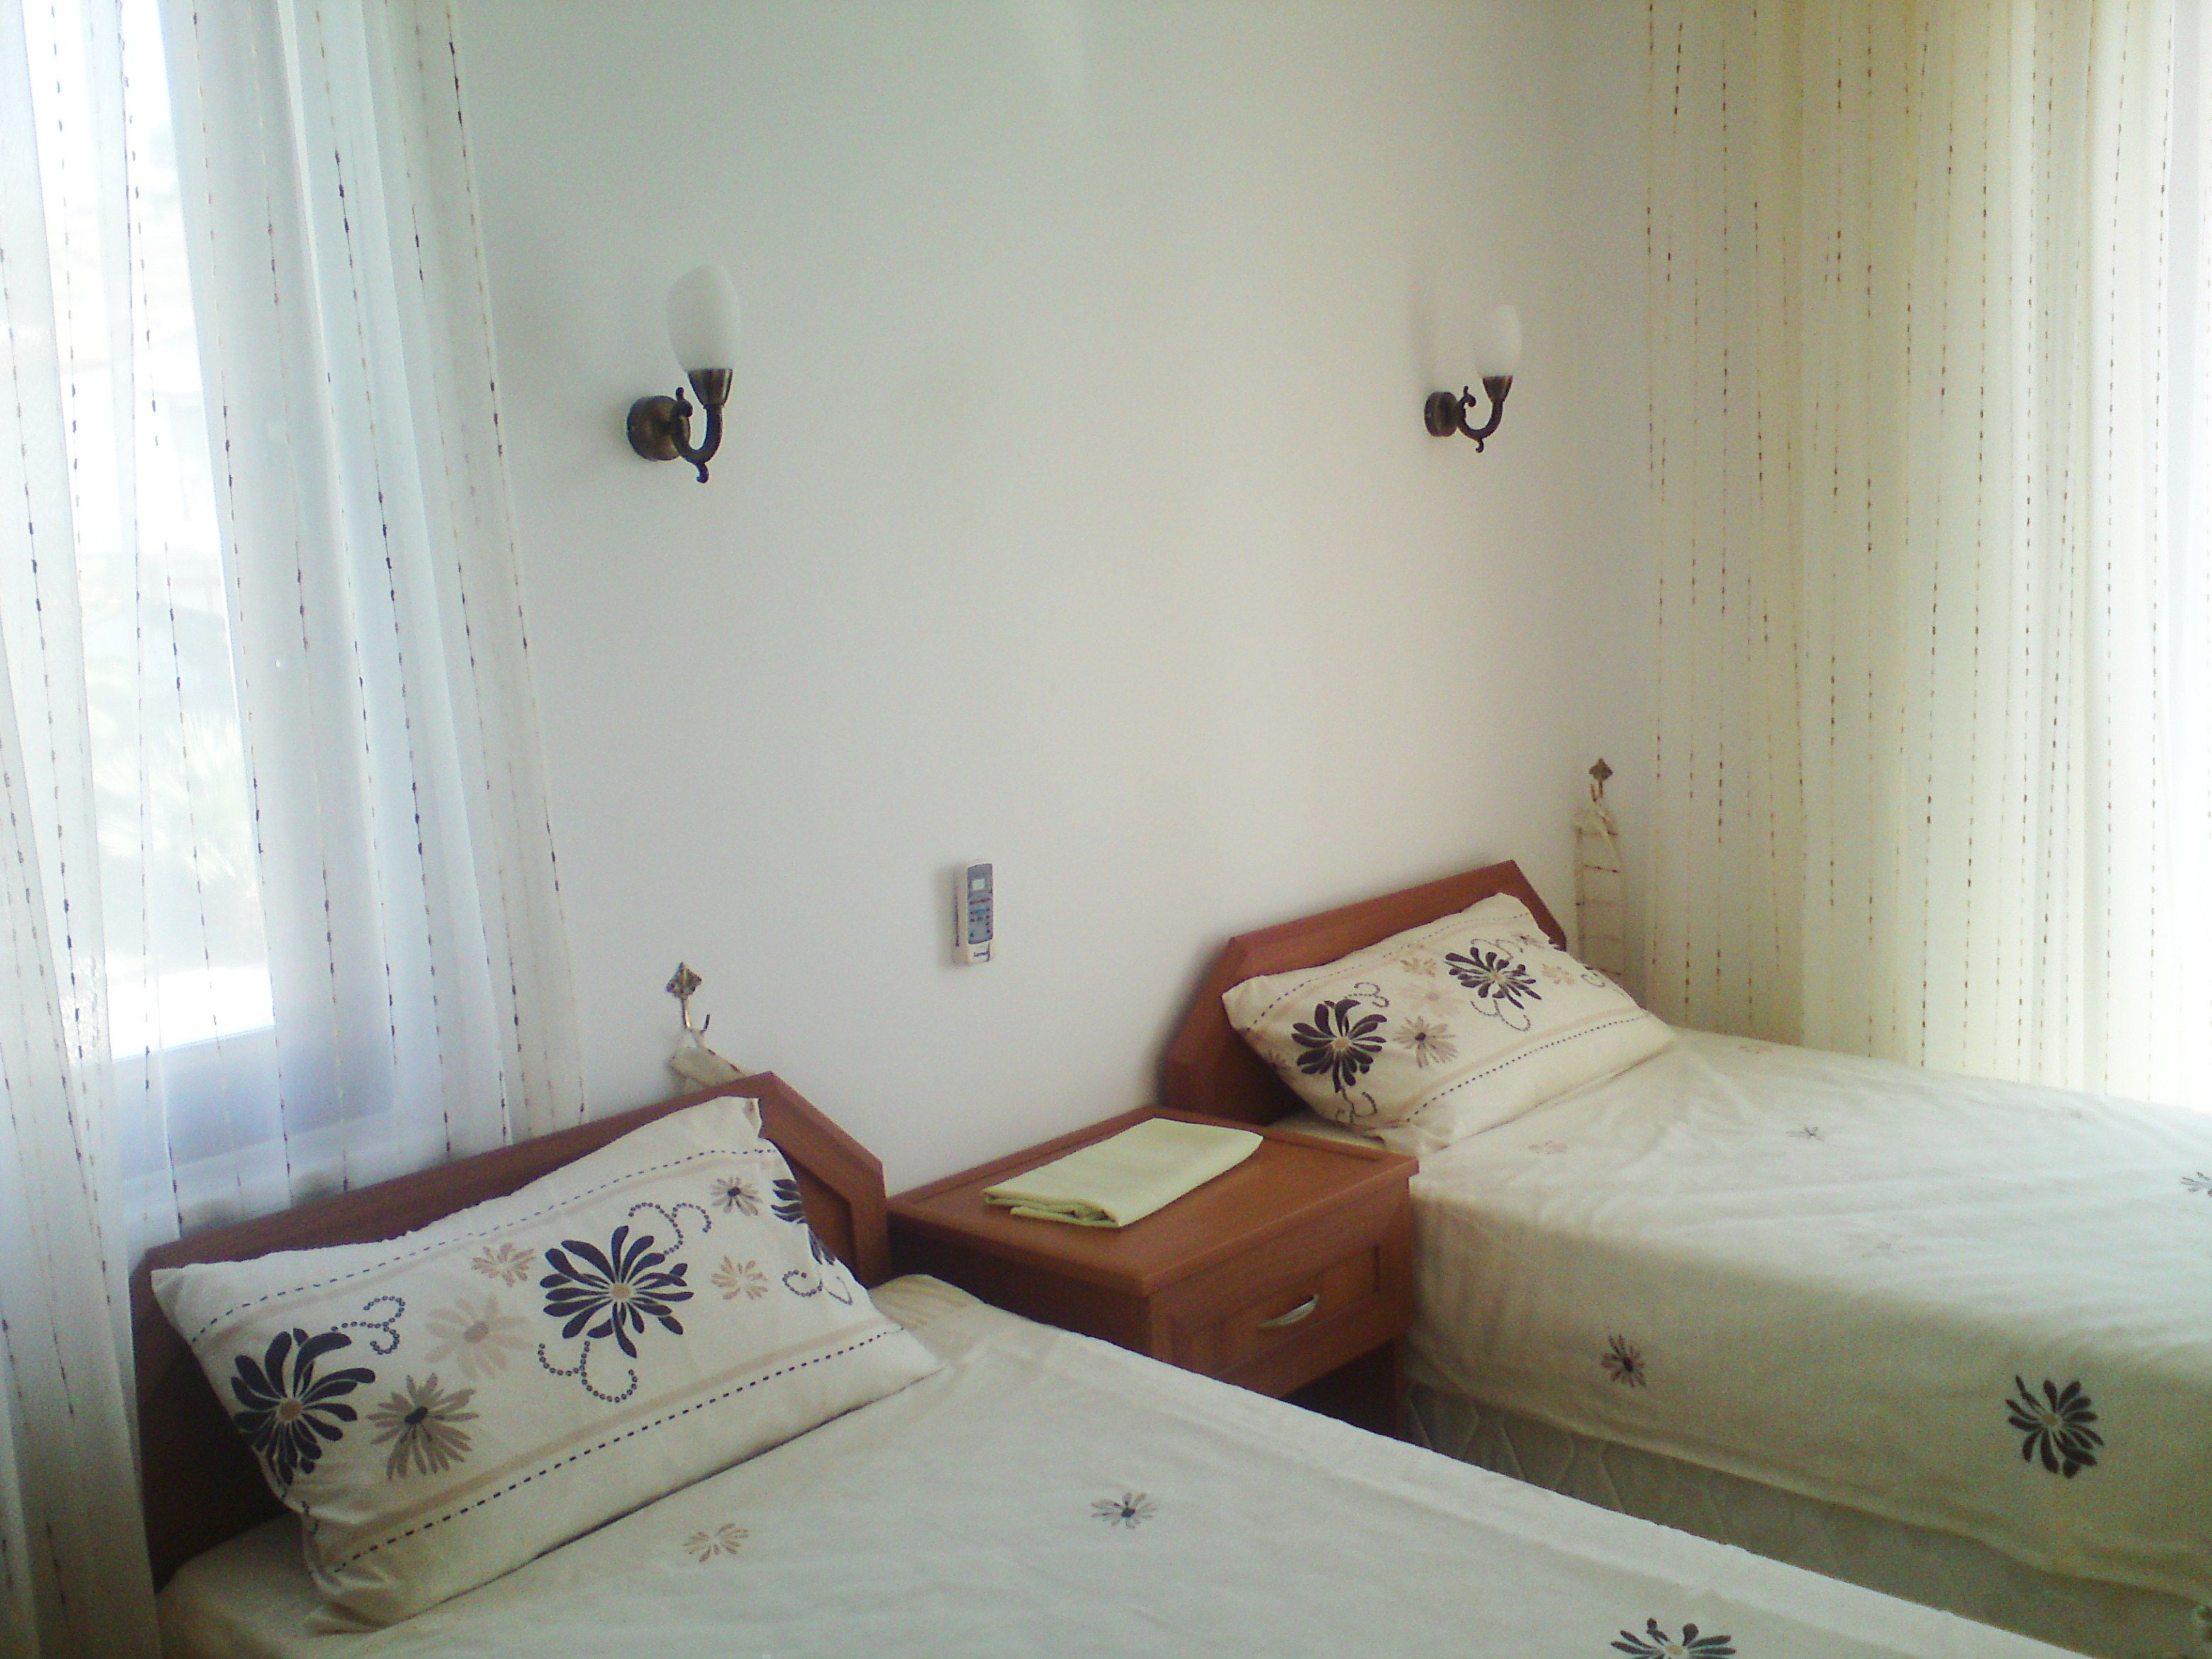 7. Twin bed